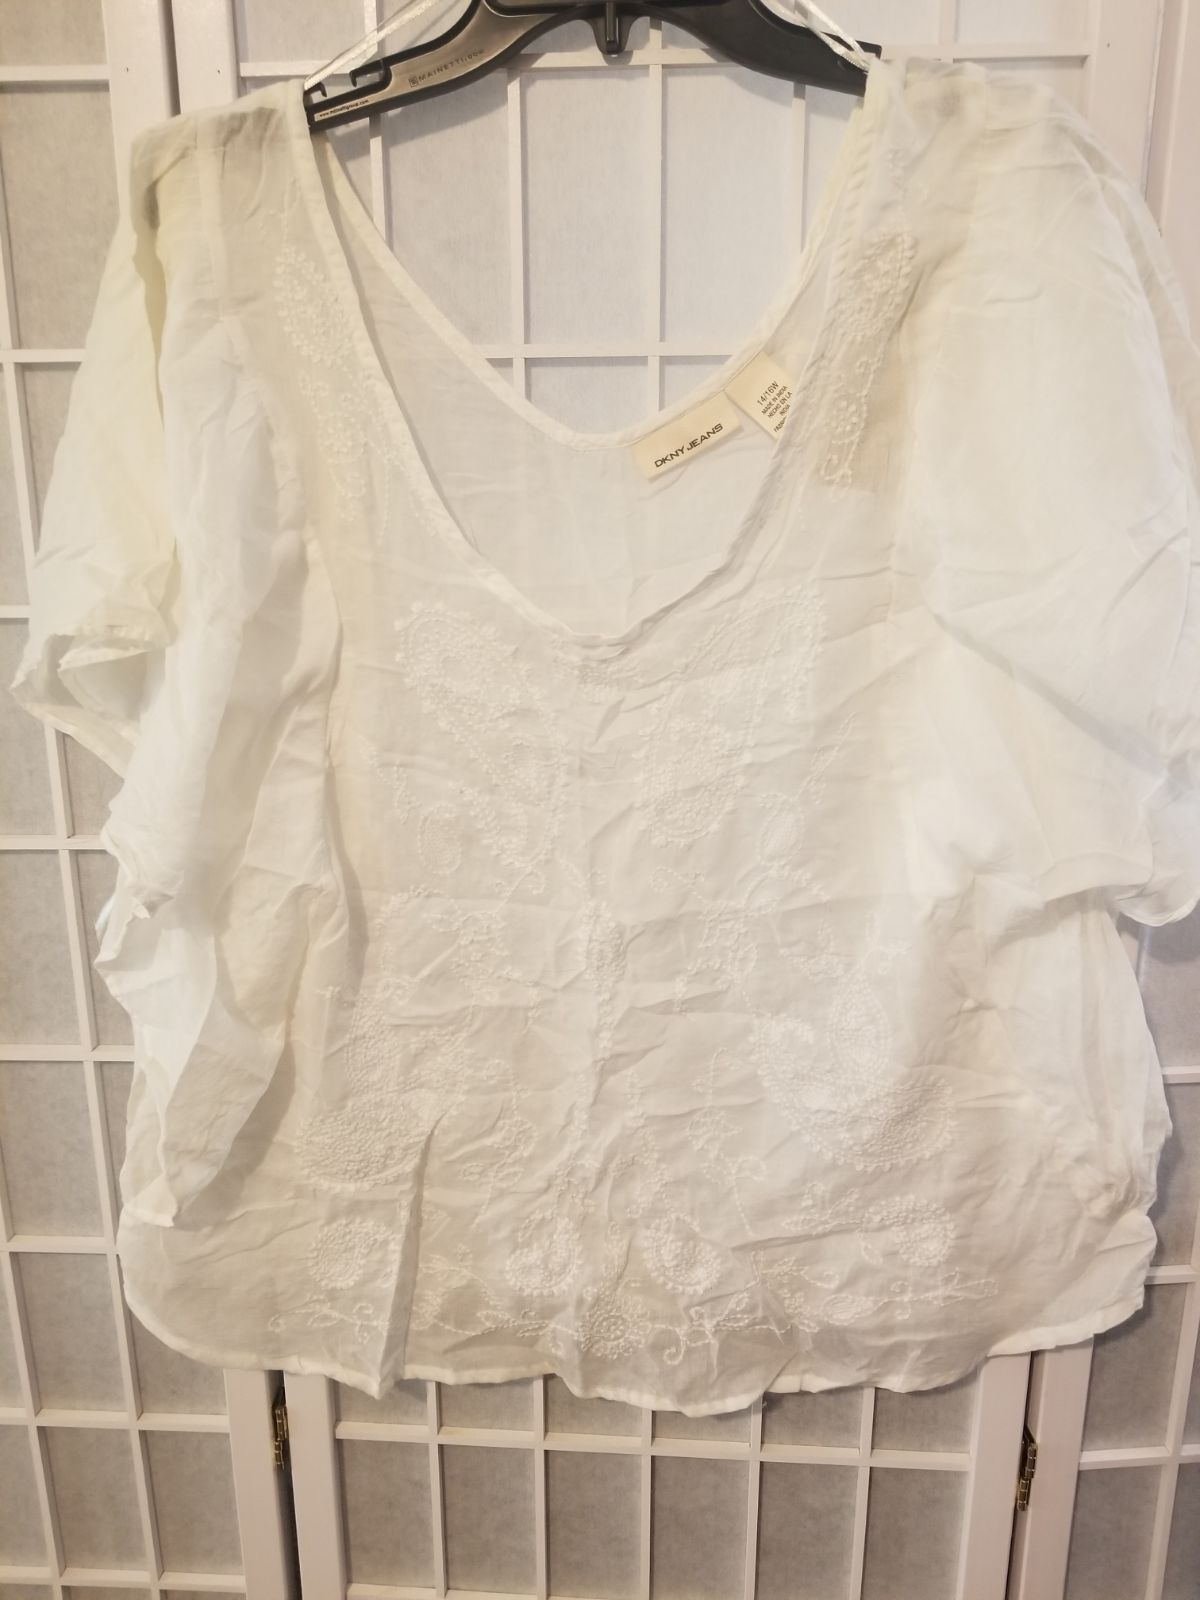 DKNY Jeans White Embroidered Top, 14/16